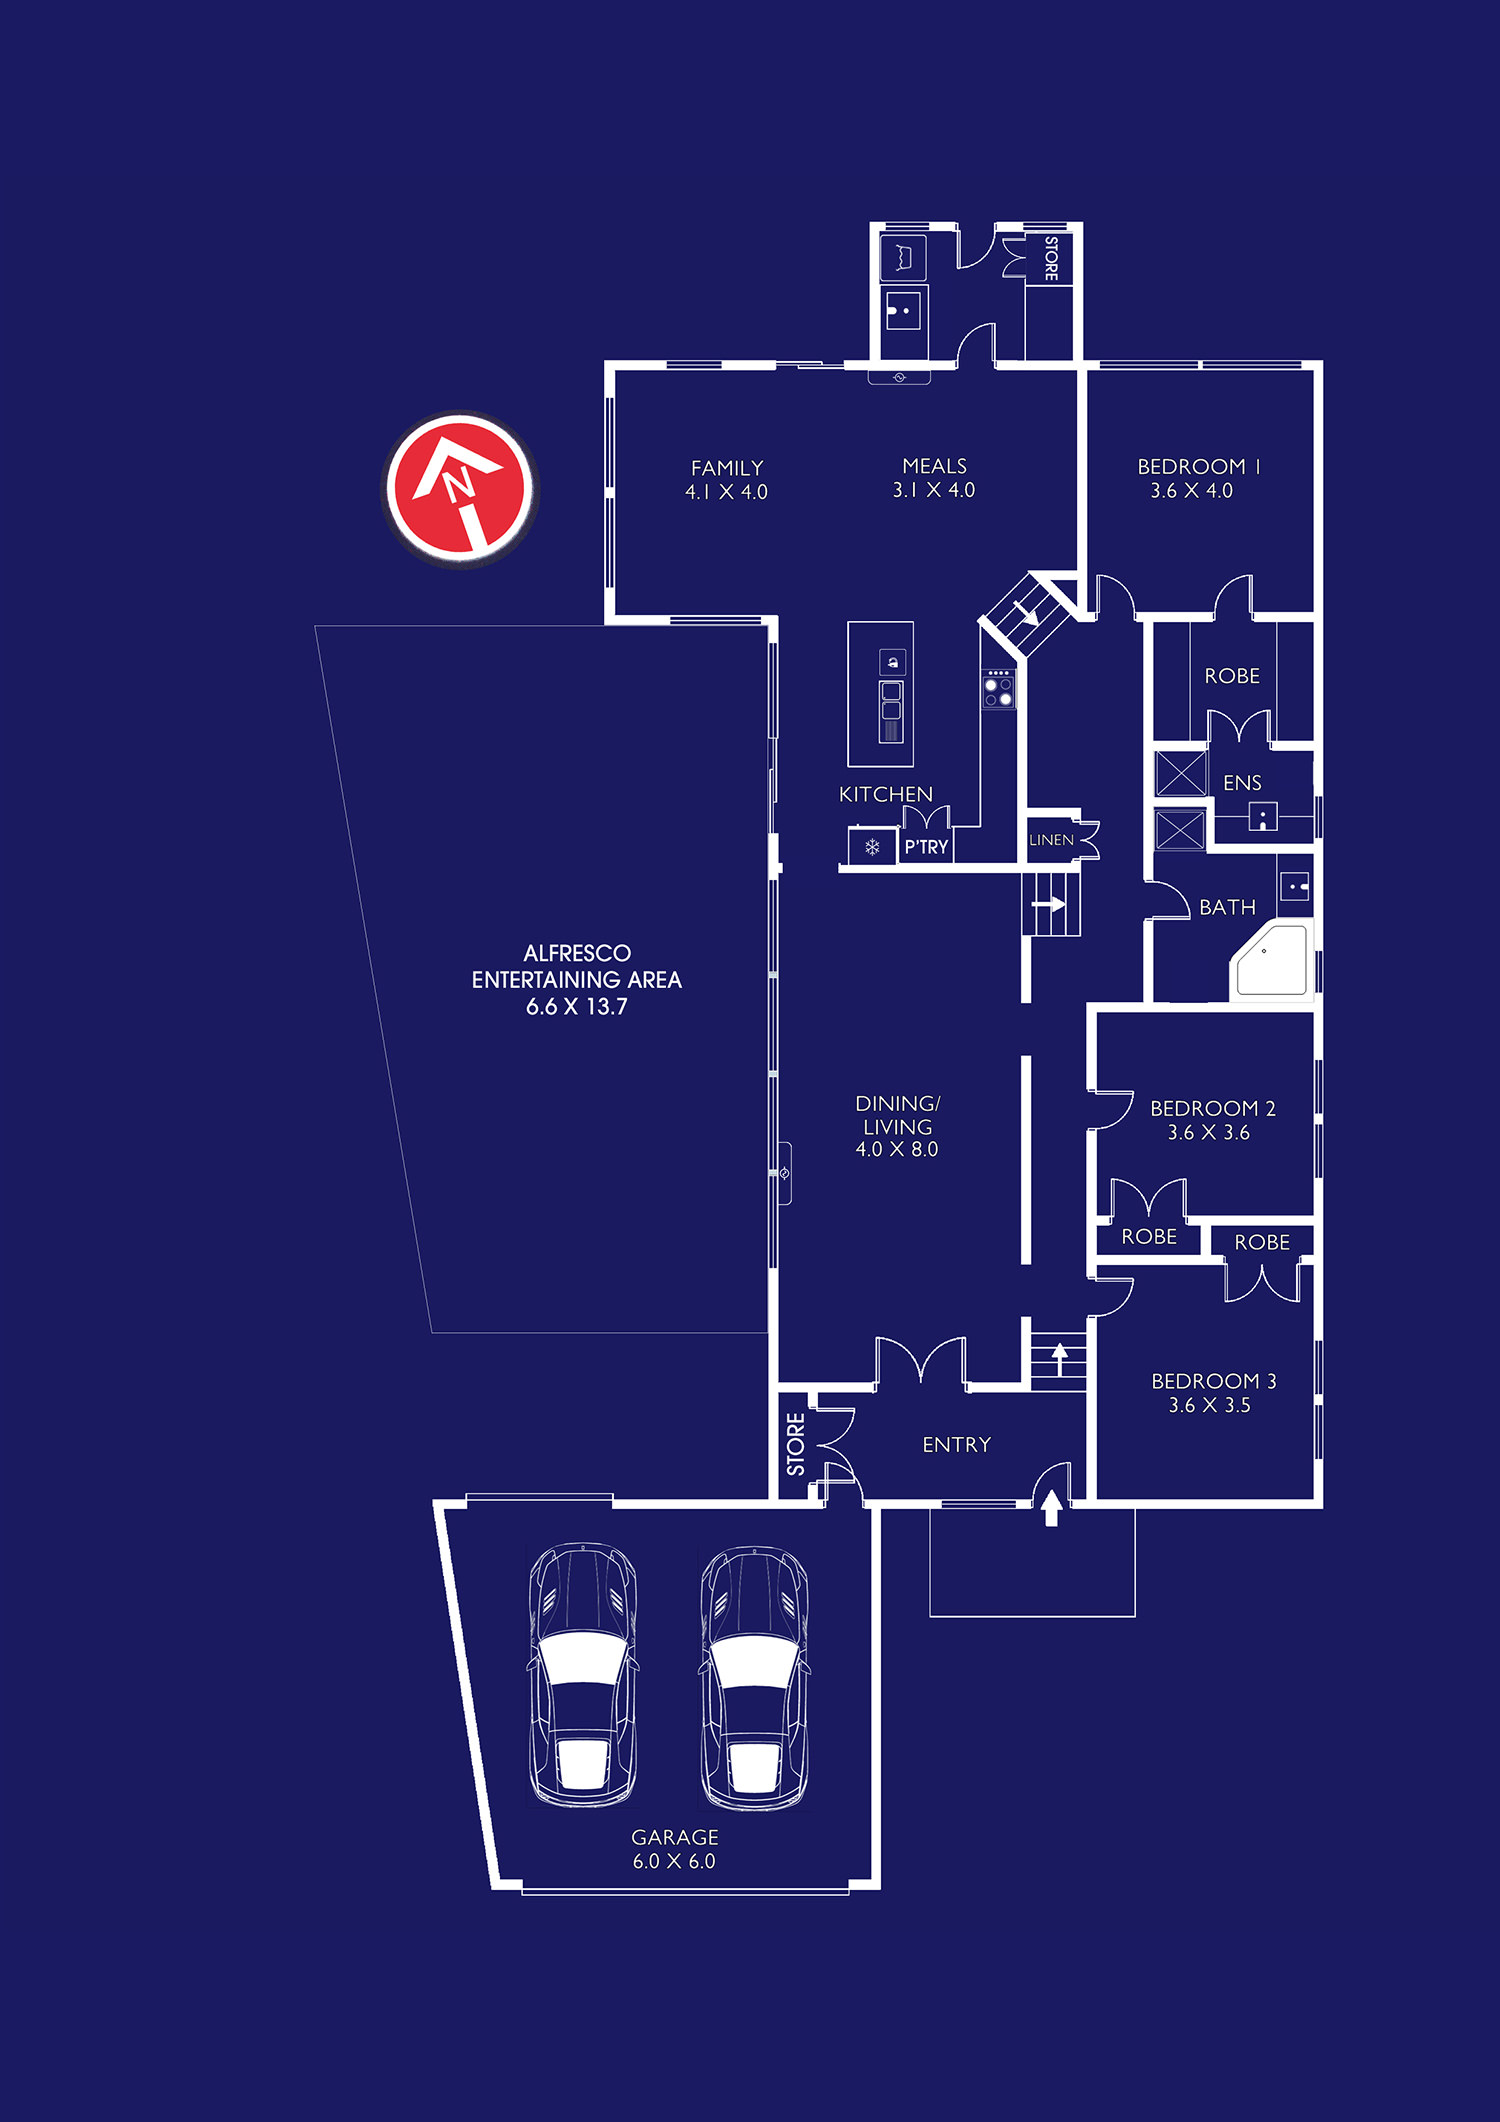 Geelong Site Plan for real estate roncon.jpg